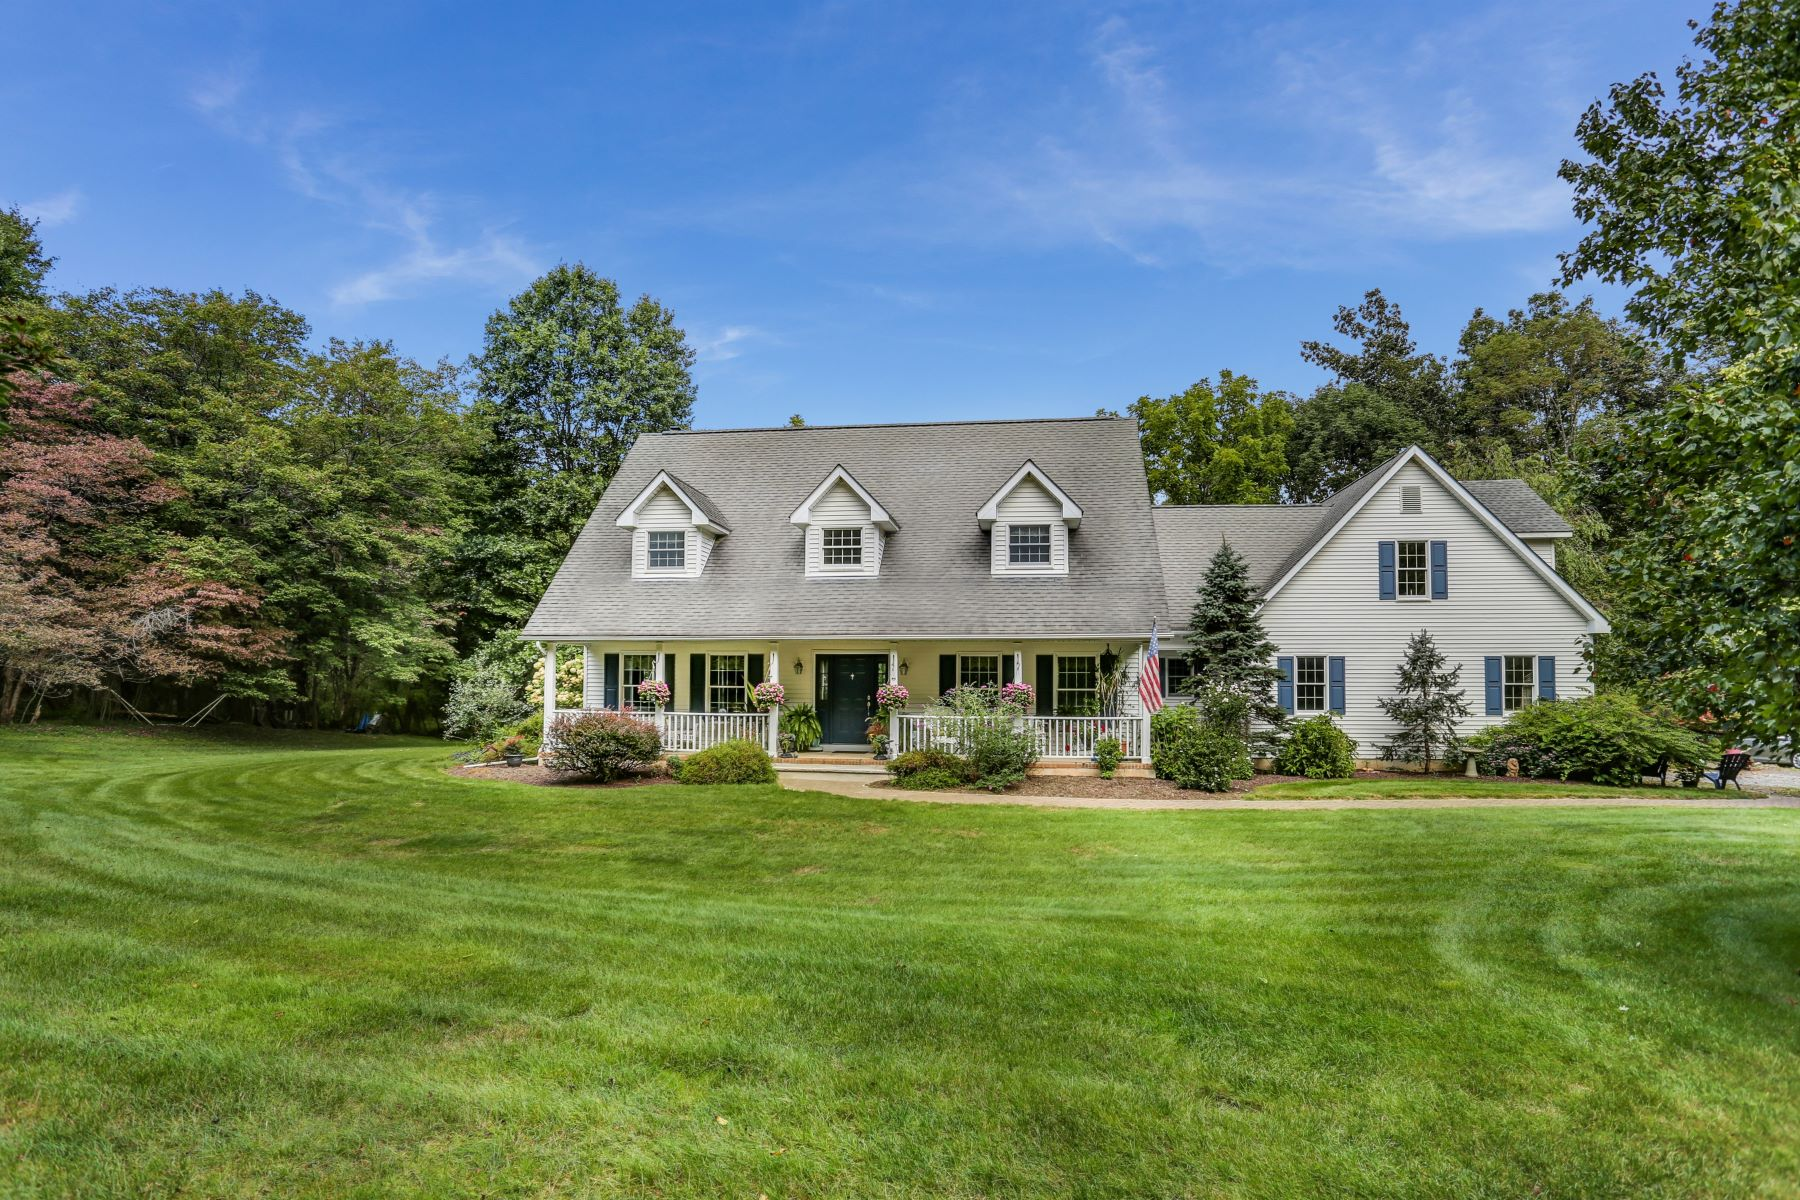 Single Family Homes for Sale at Private Country Setting 178 Old Turnpike Road Long Valley, New Jersey 07853 United States